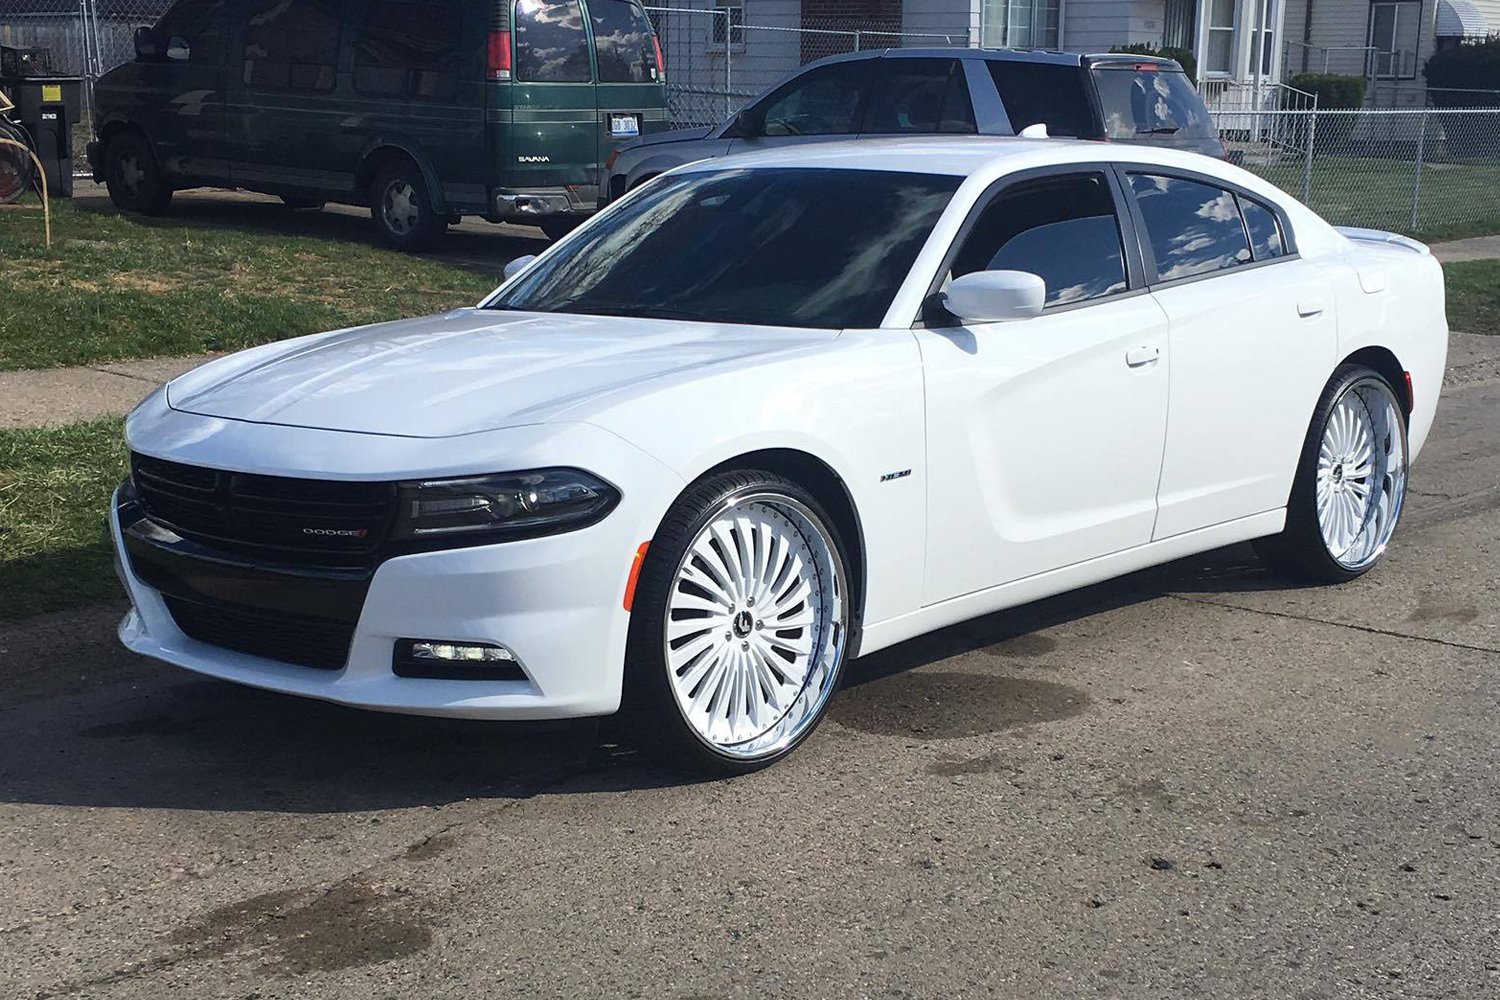 White Dodge Charger Rt - Best Electronic 2017